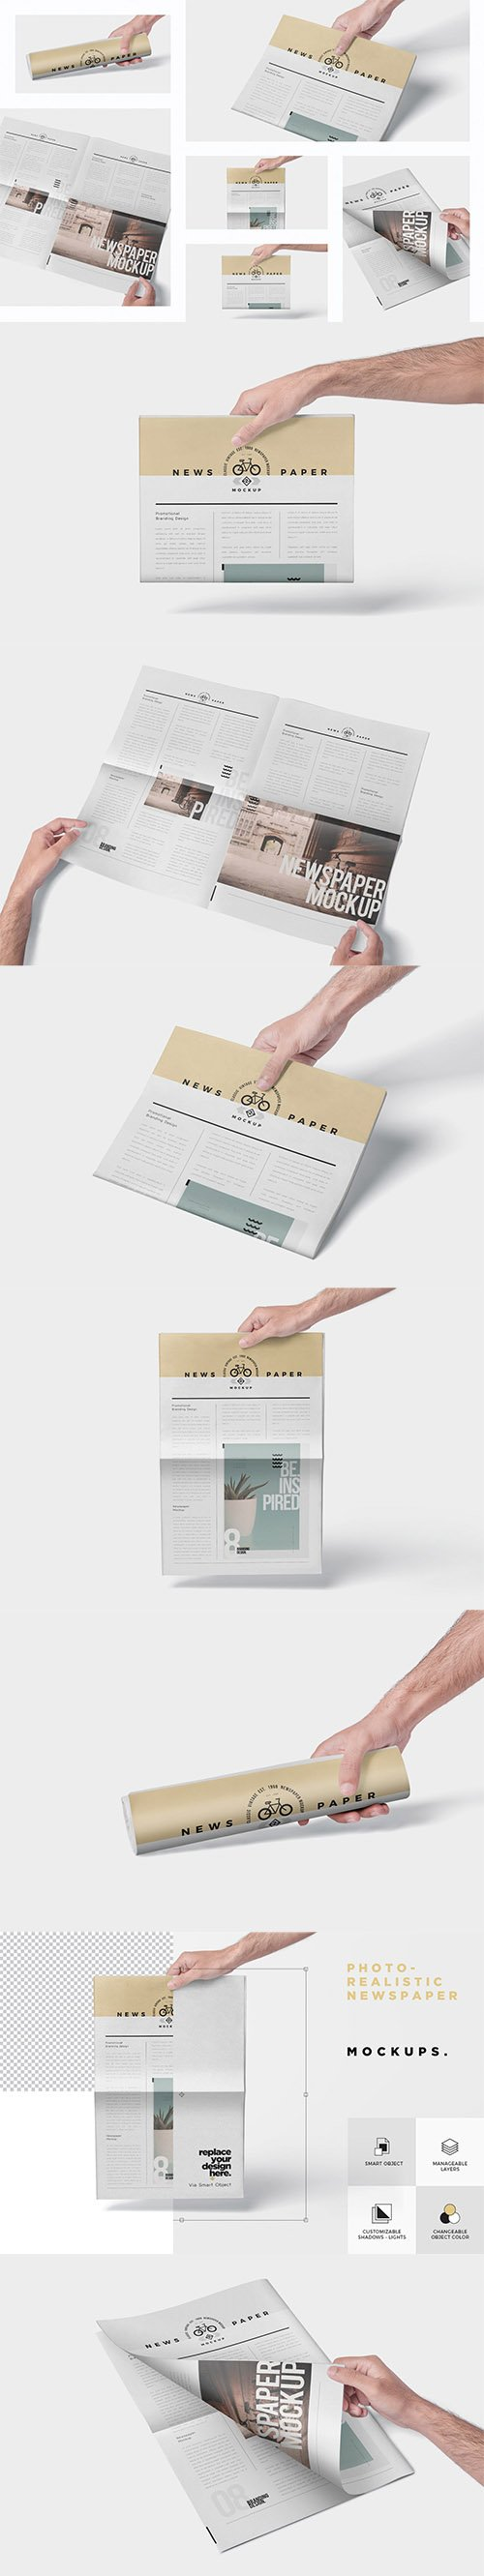 Photorealistic Newspaper Mockups PSD